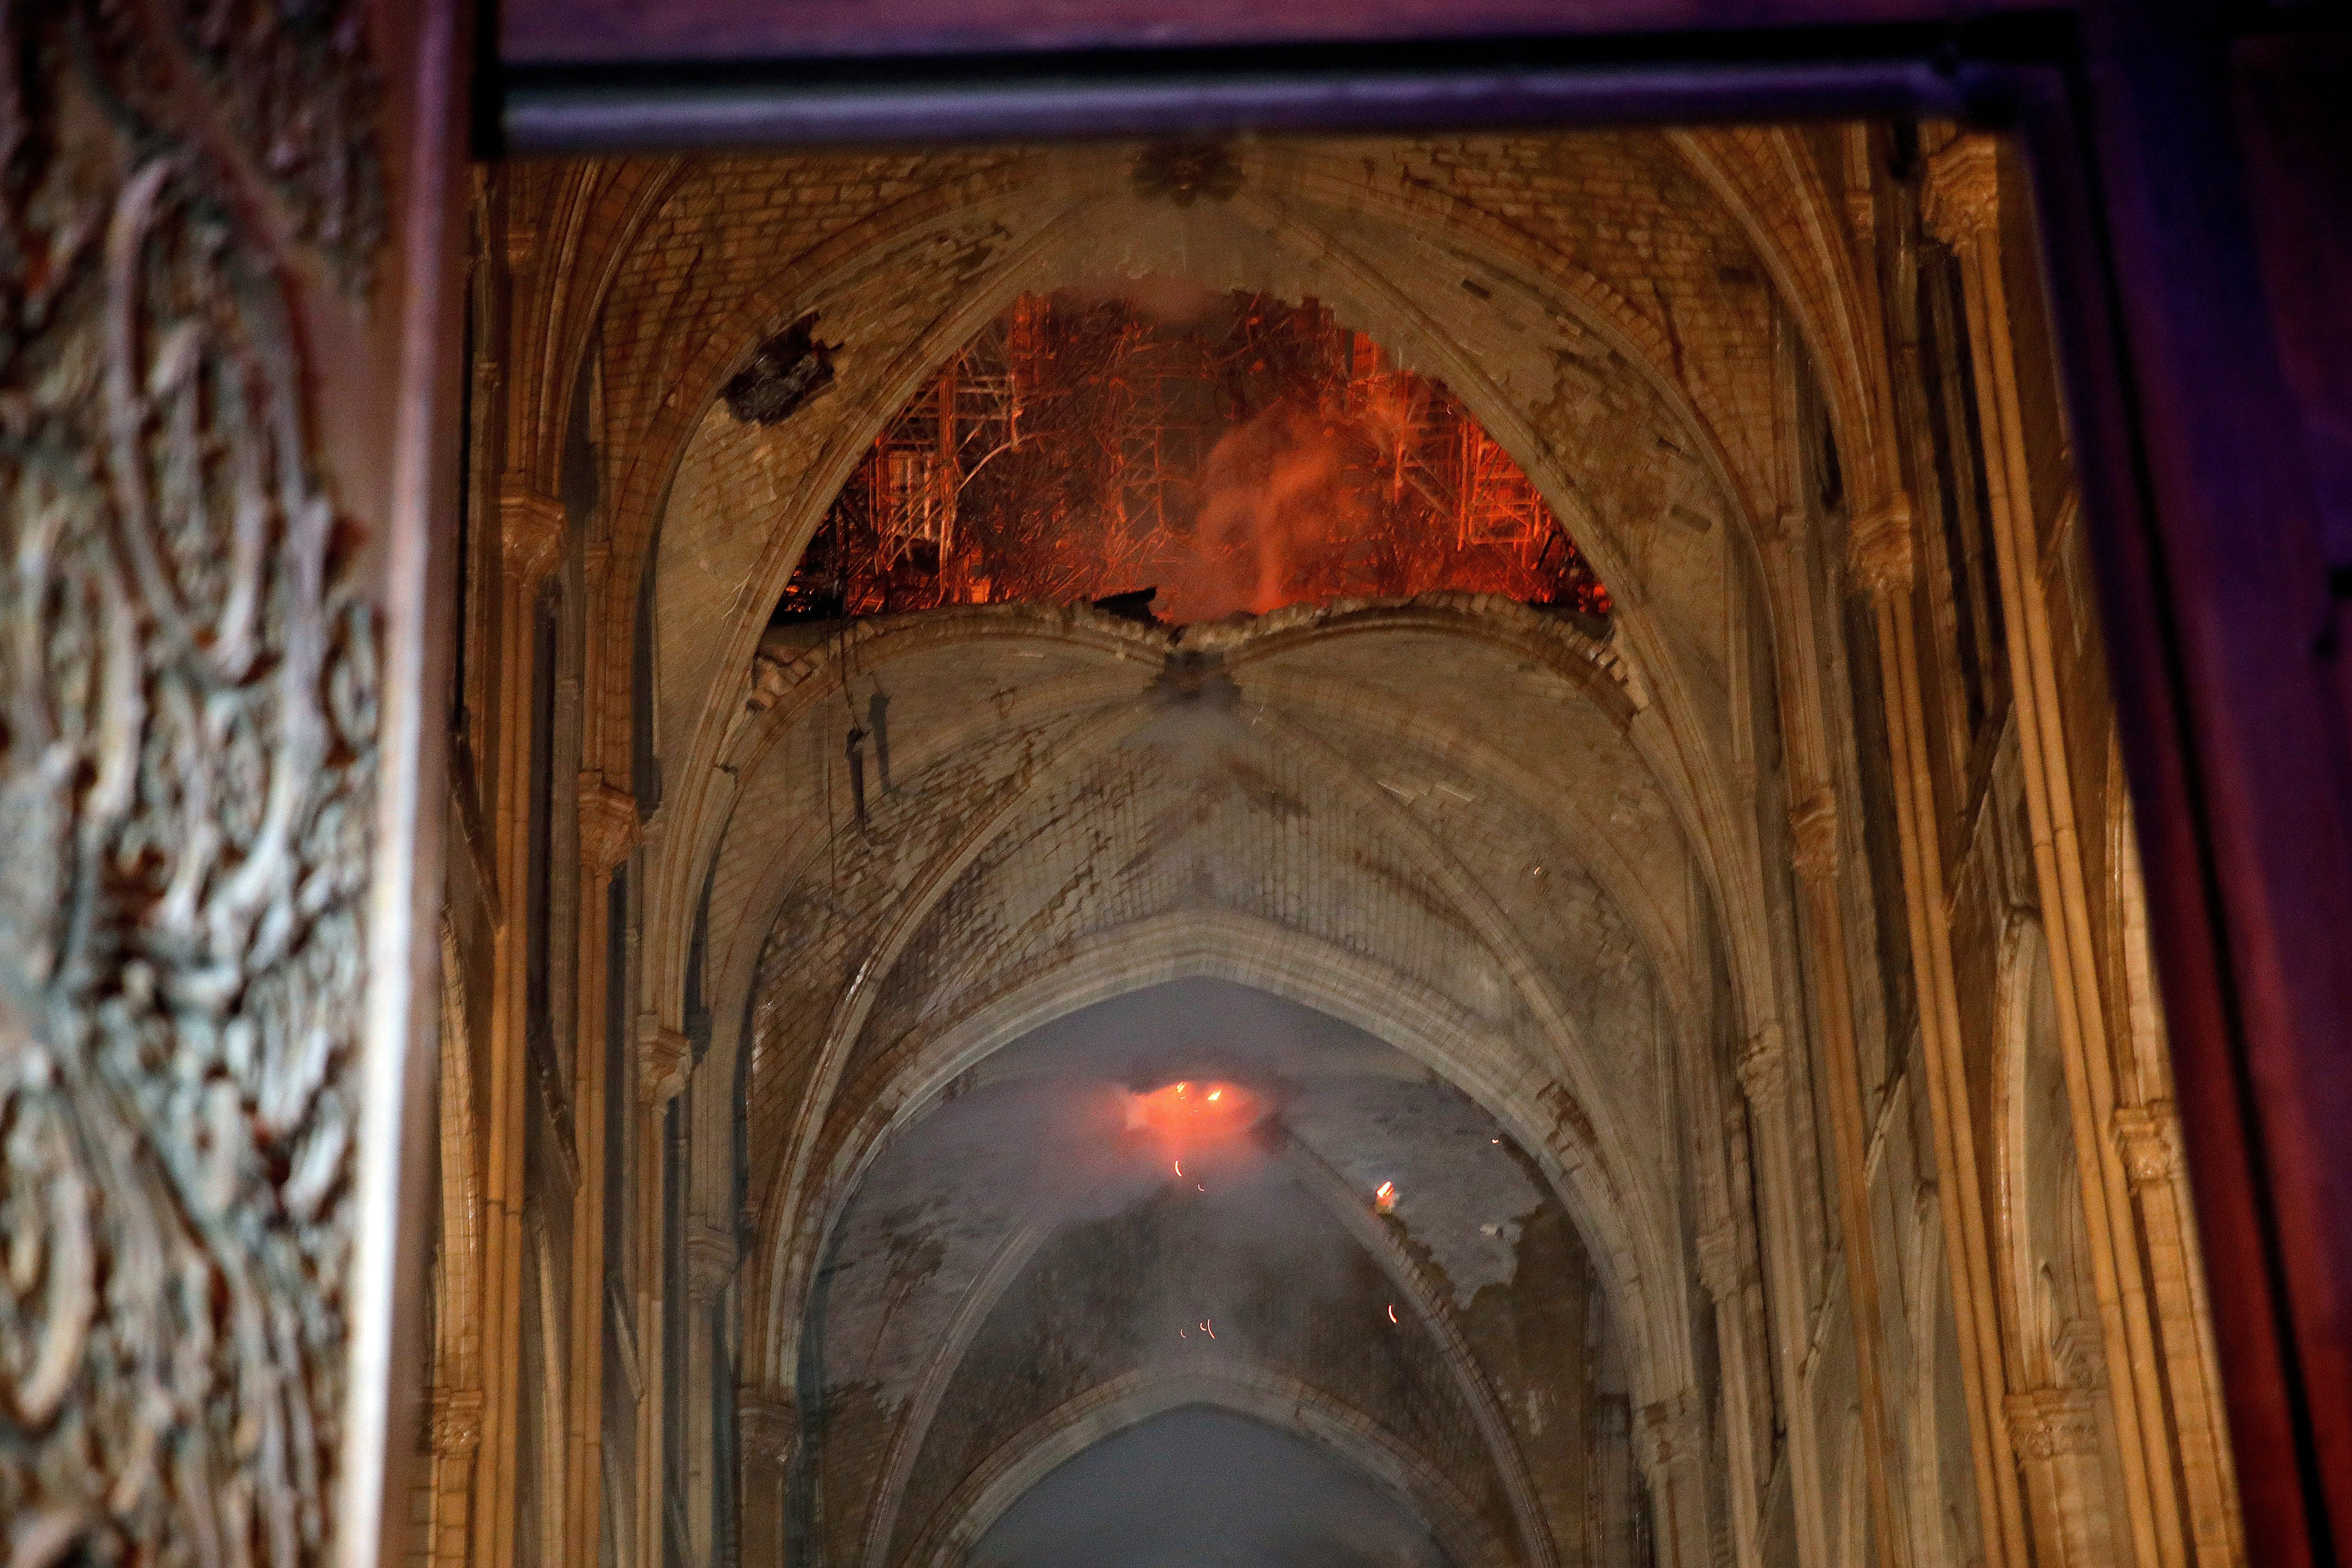 Flames and smoke are seen as the interior at Notre Dame cathedral in Paris, Monday, April 15, 2019. A catastrophic fire engulfed the upper reaches of Paris' soaring Notre Dame Cathedral as it was undergoing renovations Monday, threatening one of the greatest architectural treasures of the Western world as tourists and Parisians looked on aghast from the streets below.